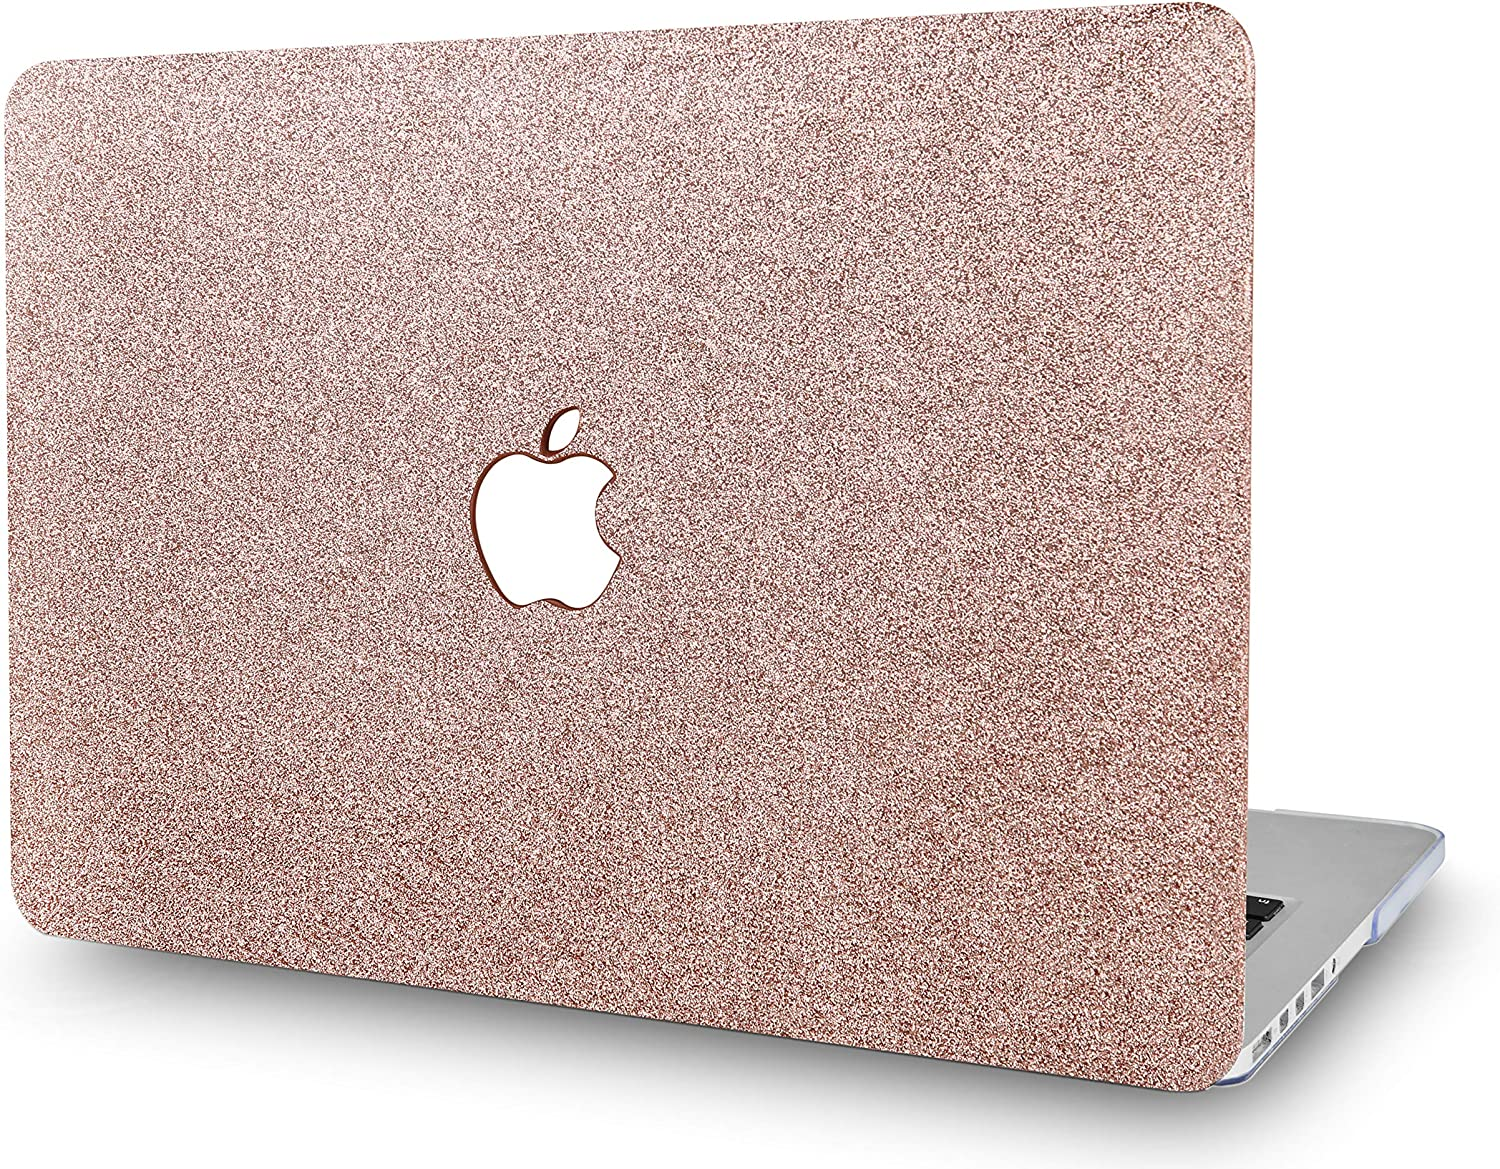 "KECC Laptop Case for MacBook Air 13"" Plastic Case Hard Shell Cover A1466/A1369 (Rose Gold Sparkling)"